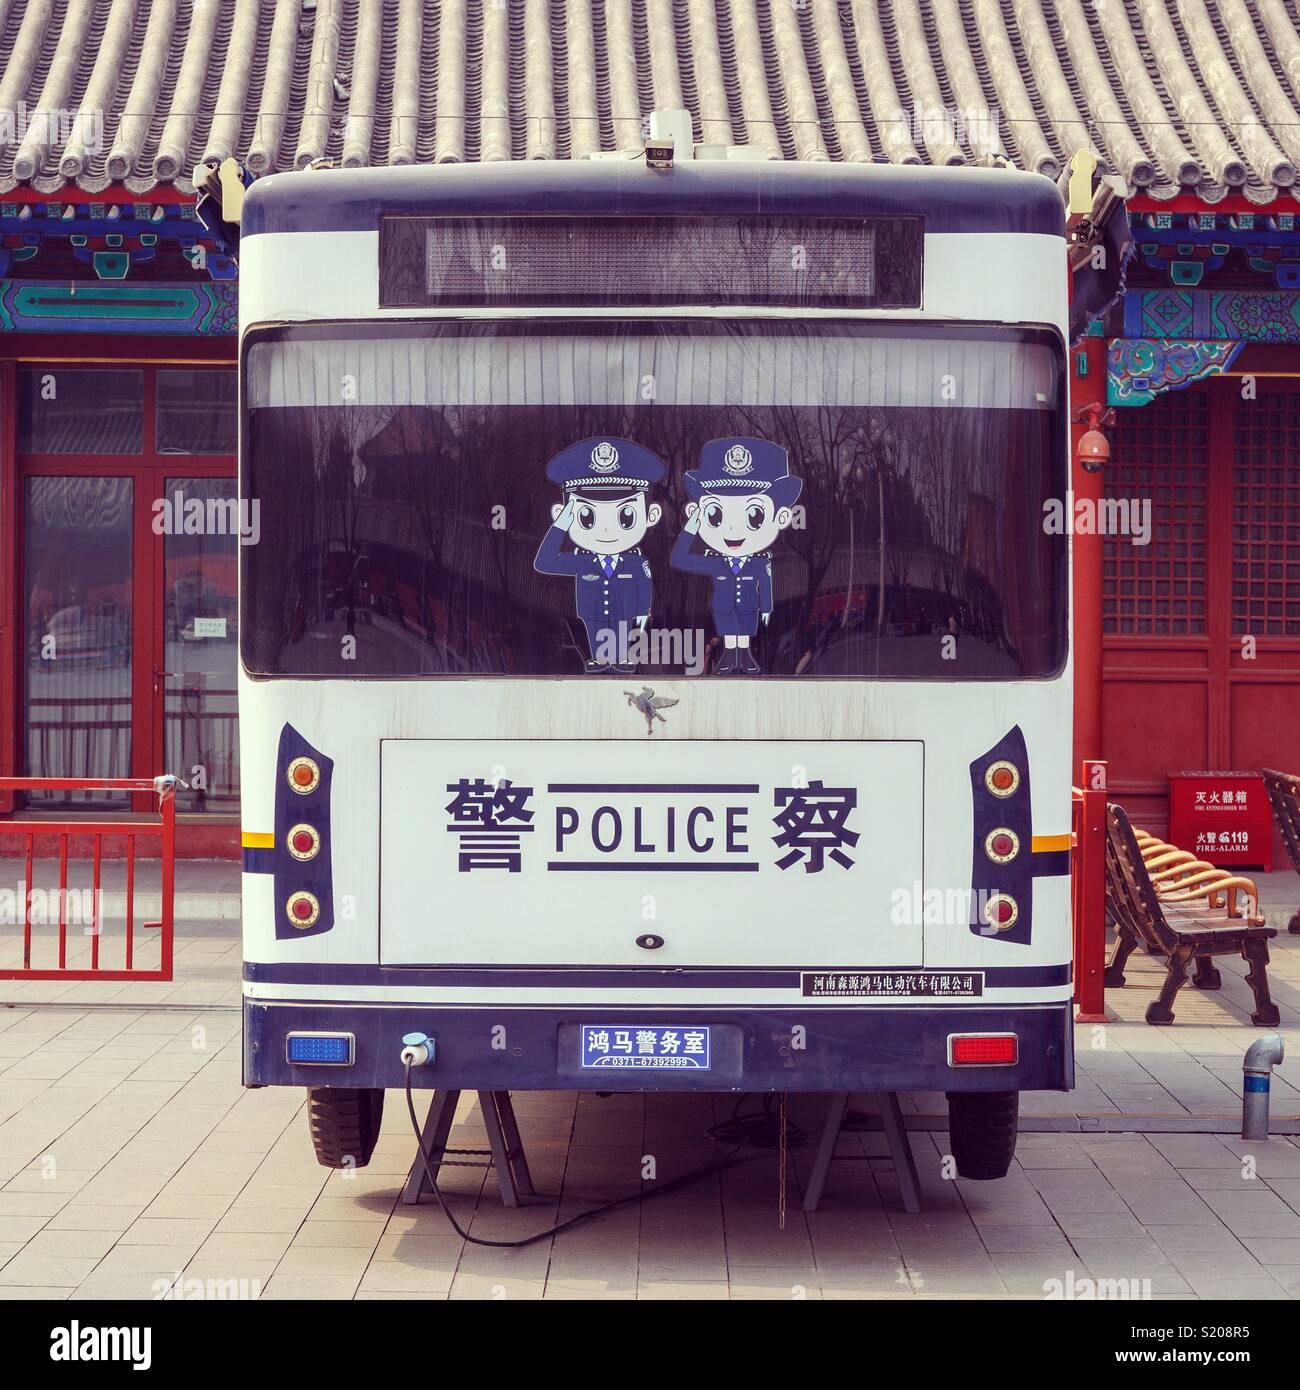 Chinese Mobile Police Station. - Stock Image